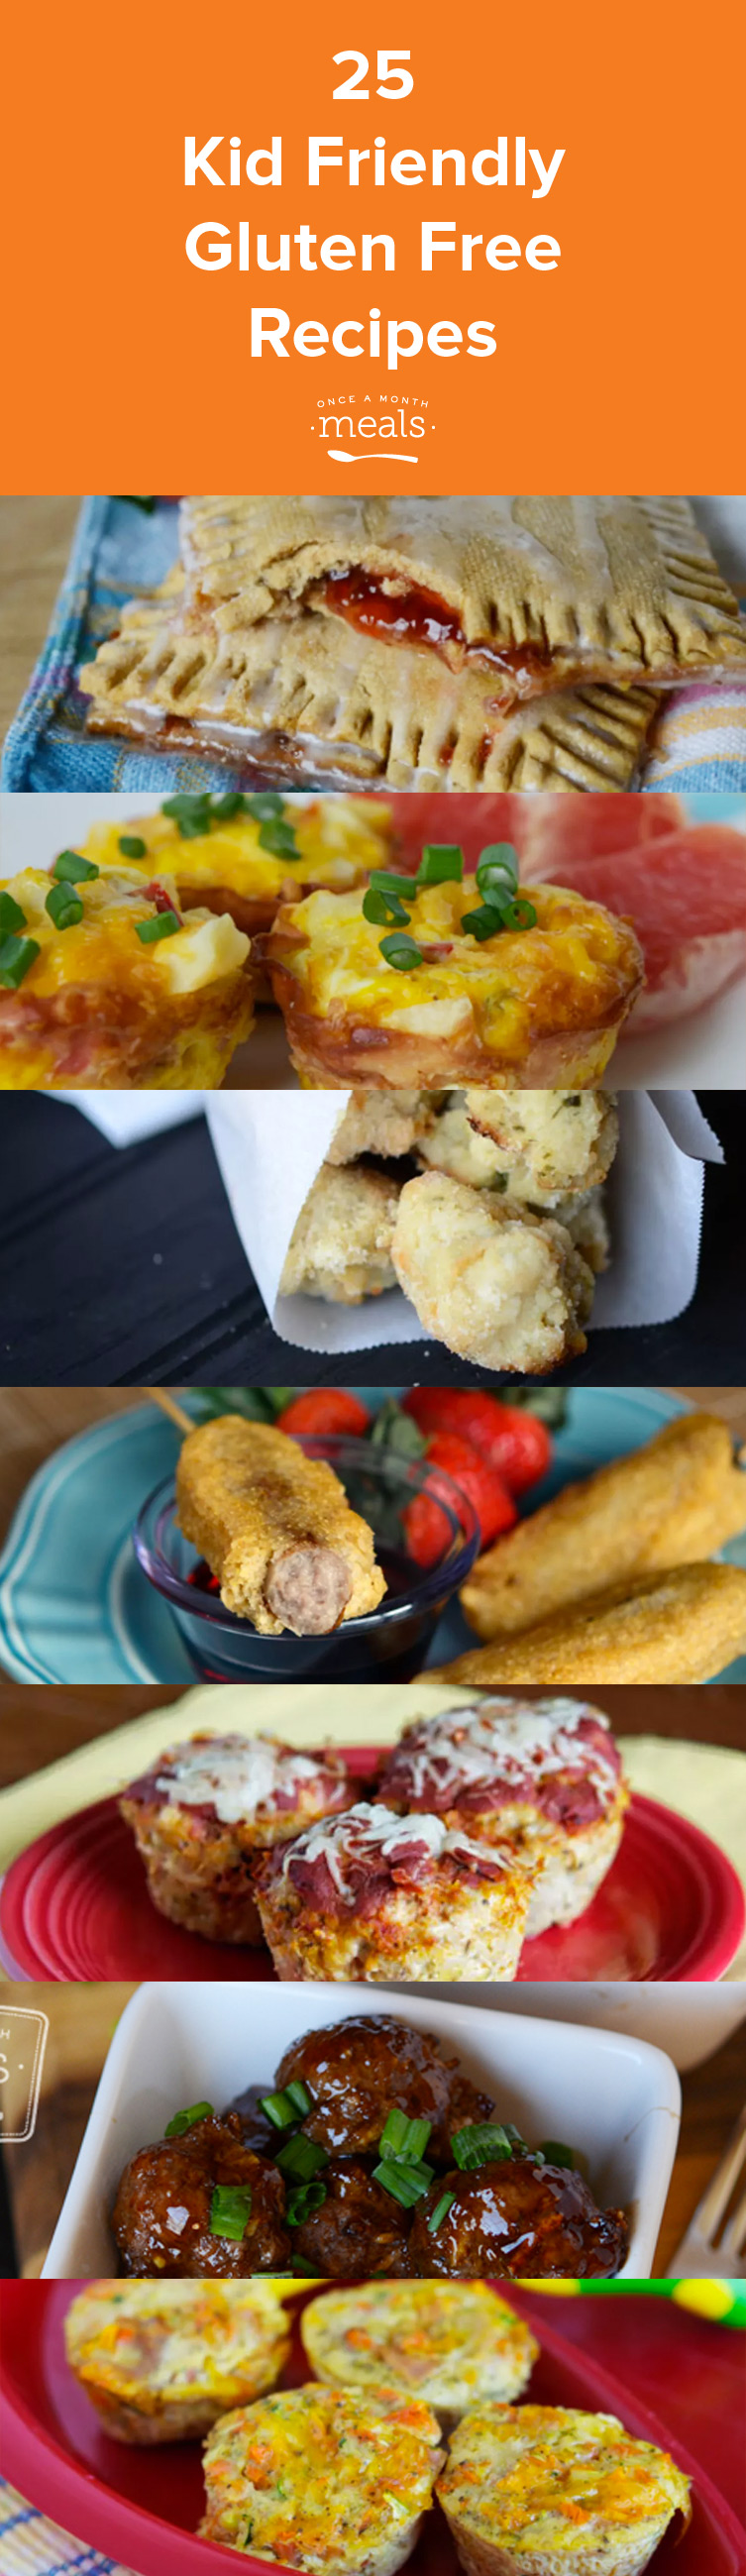 A variety of freezable, kid friendly gluten free recipes.